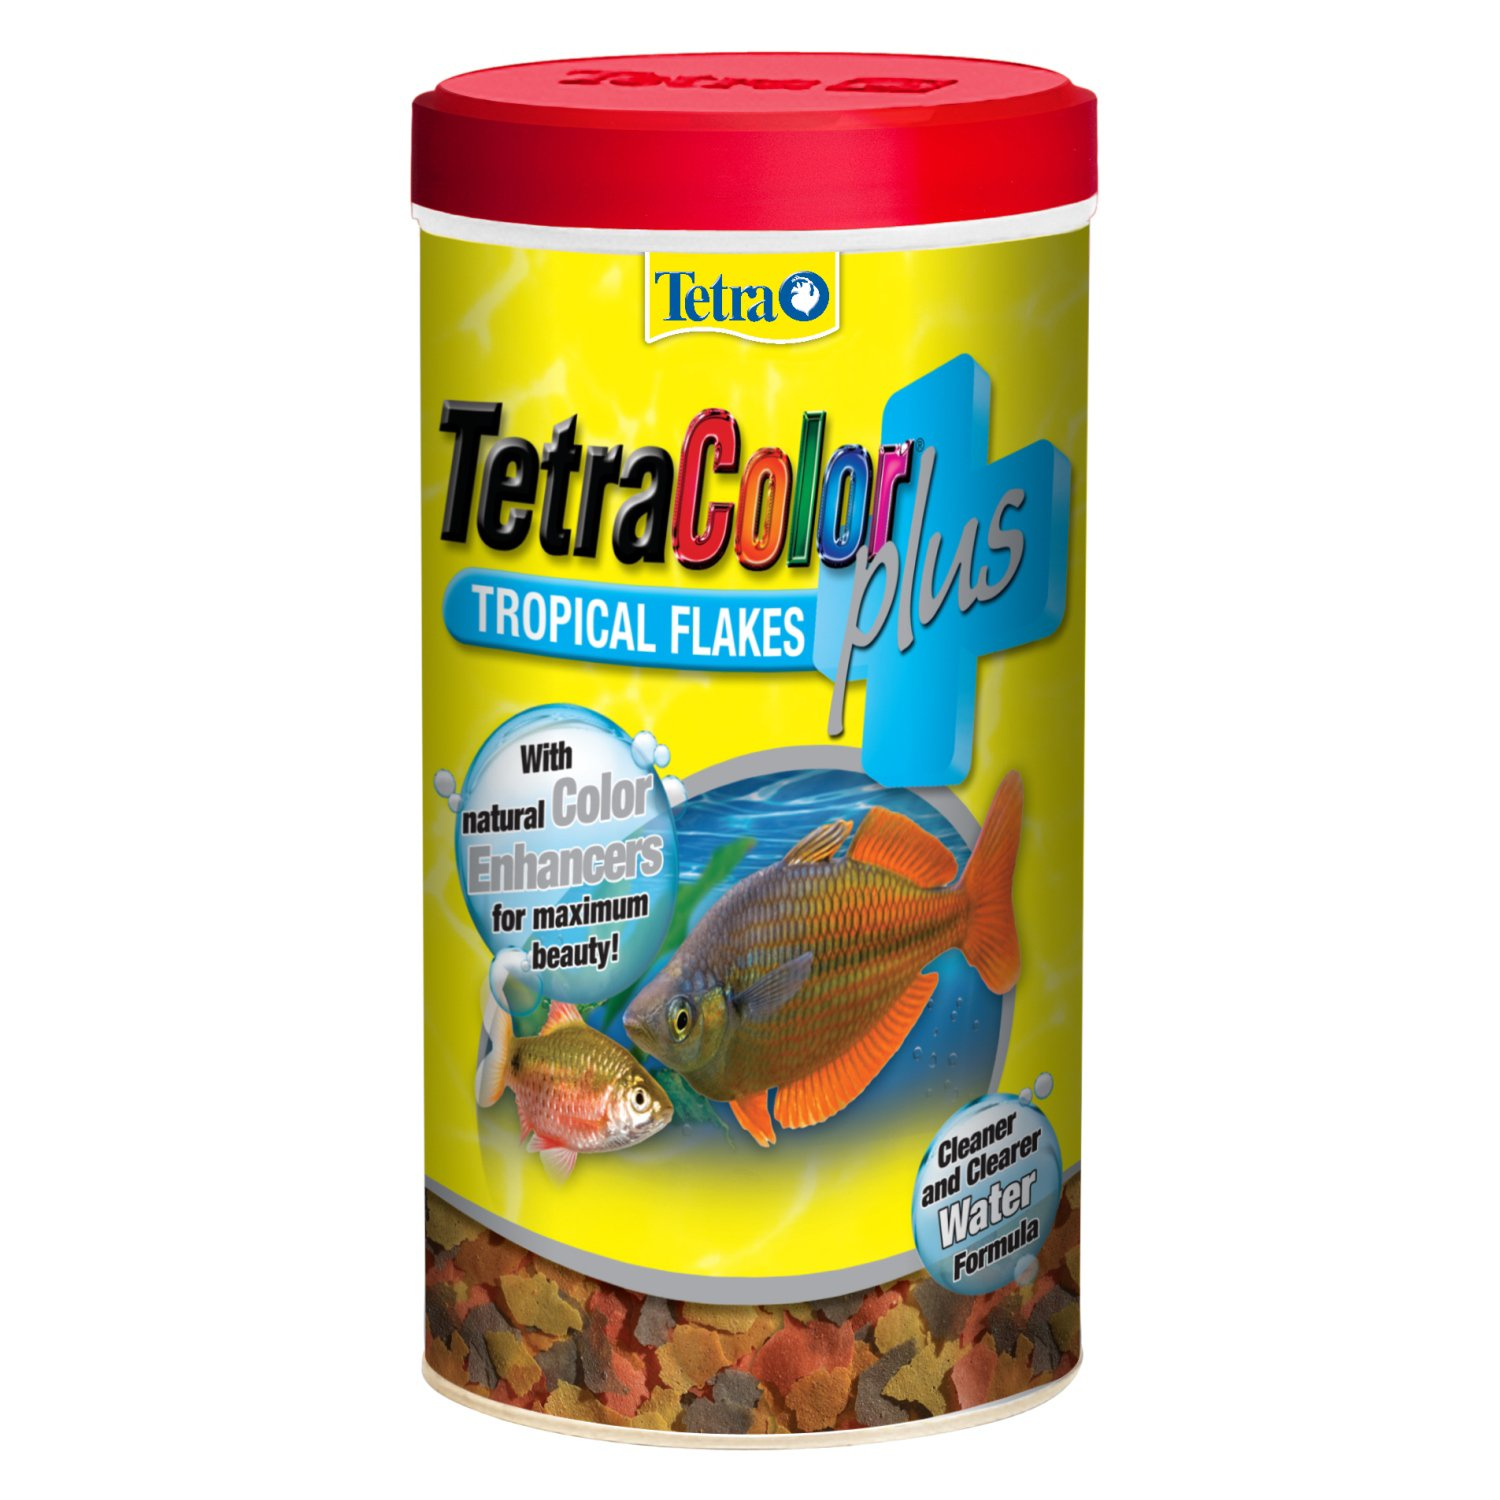 Tetra Color Plus Tropical Flakes Fish Food, 7.06-oz